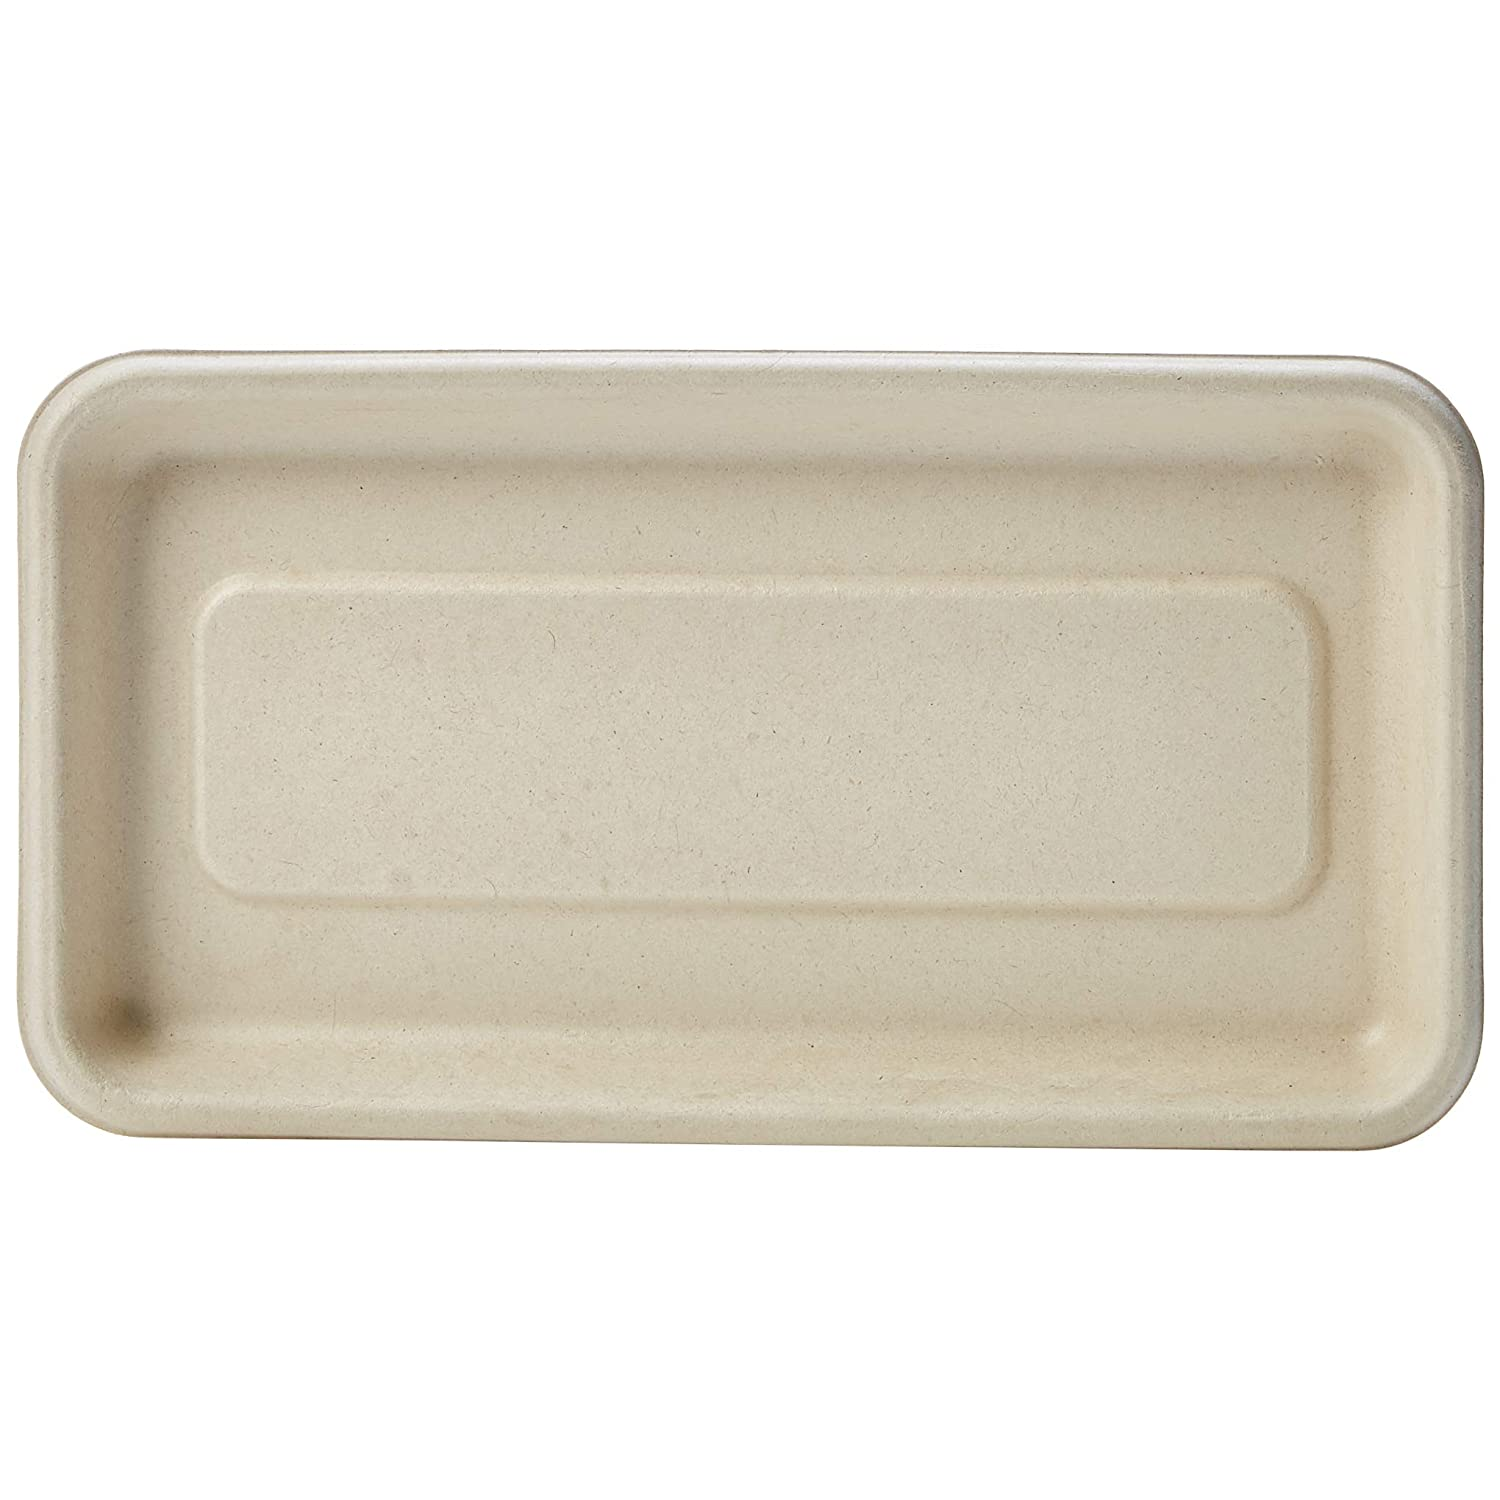 "AmazonBasics Compostable Mini Tray, 8.3"" x 4.5"" x 0.6"", Kraft, Pack of 500"